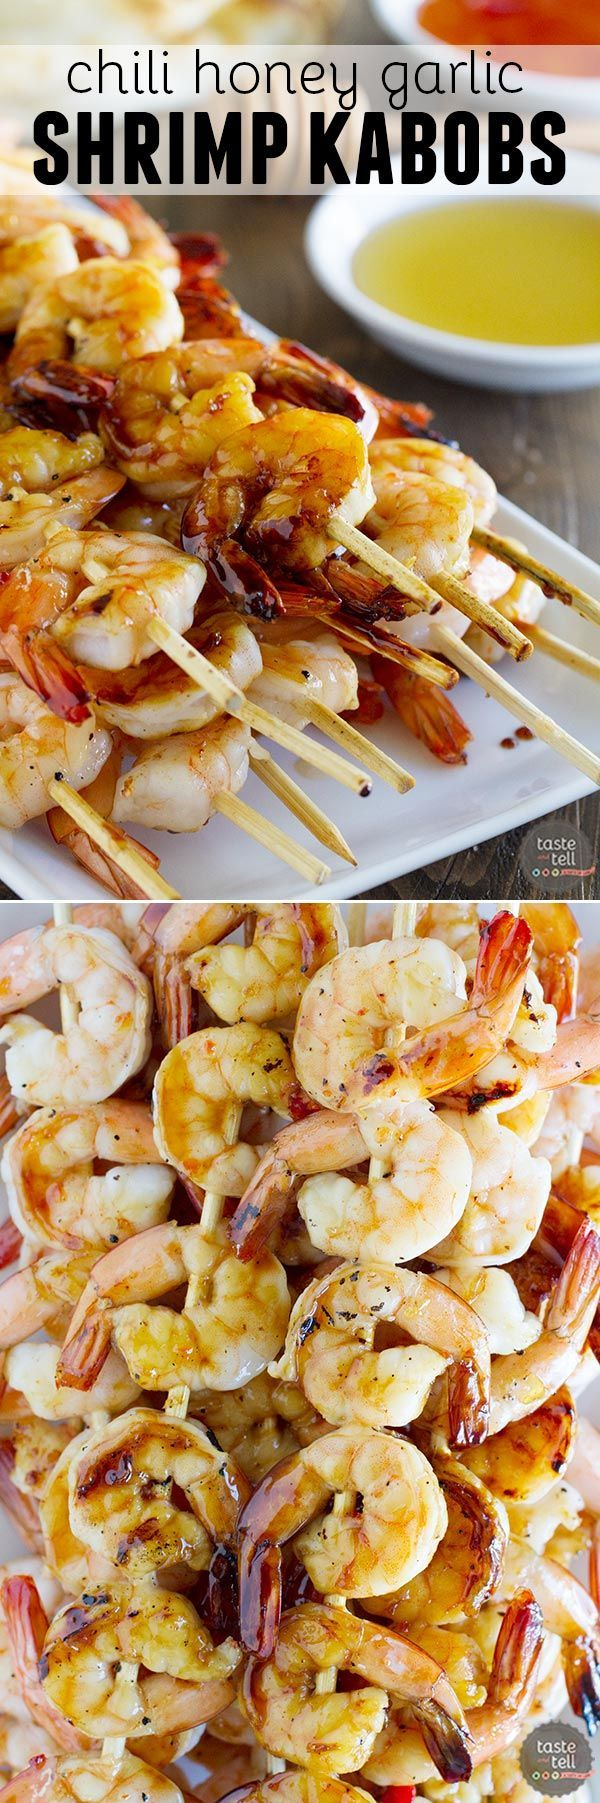 Looking for an easy dinner? Try these Chili Honey Garlic Shrimp Kabobs - the perfect recipe for a night at the grill.